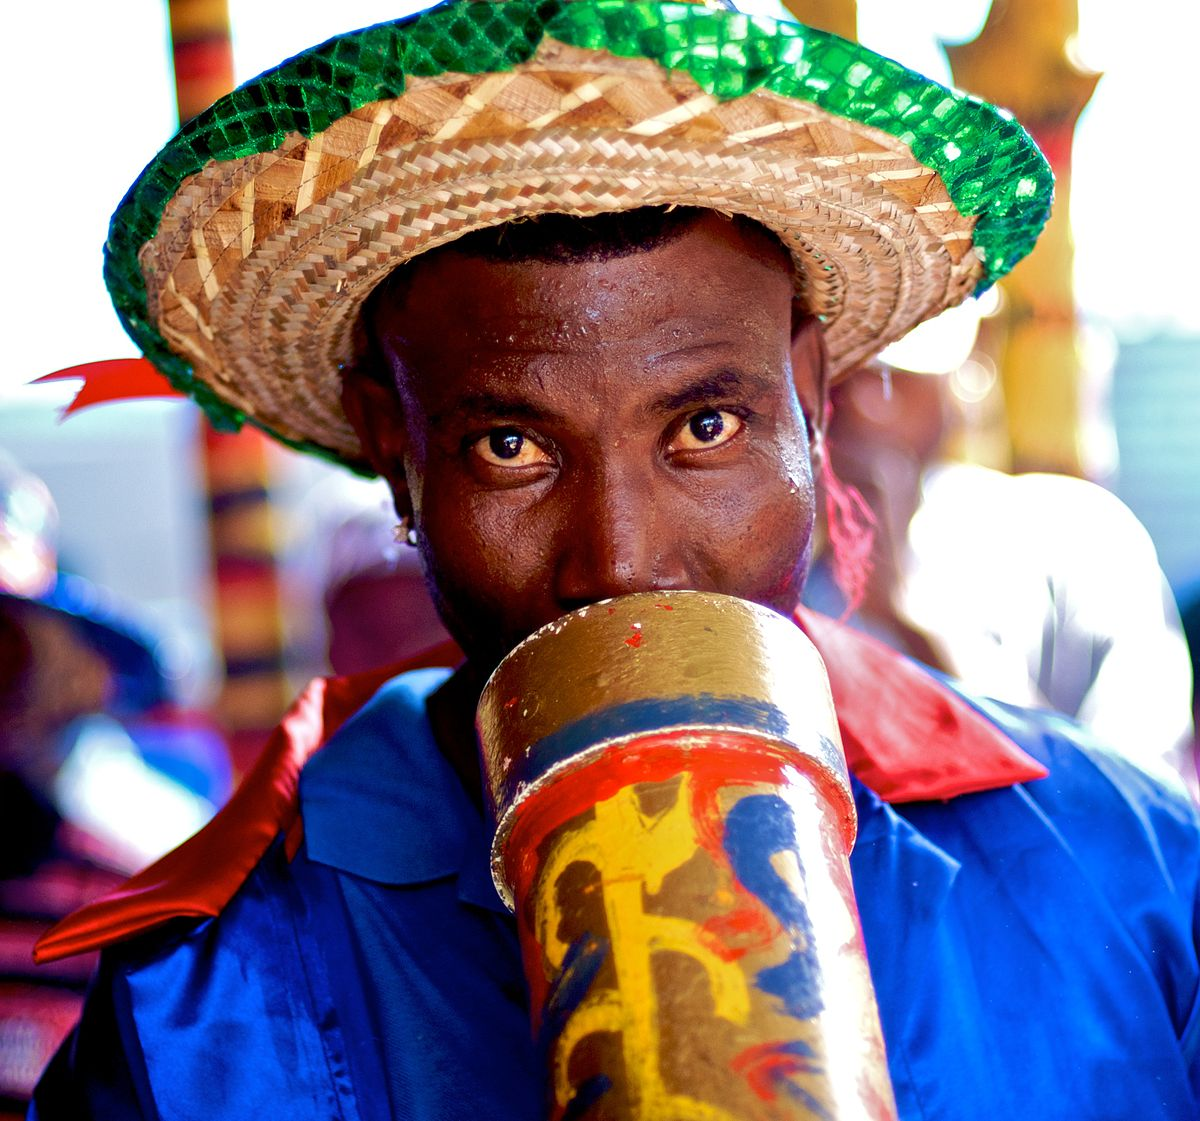 Traditional Haitian Clothing For Men